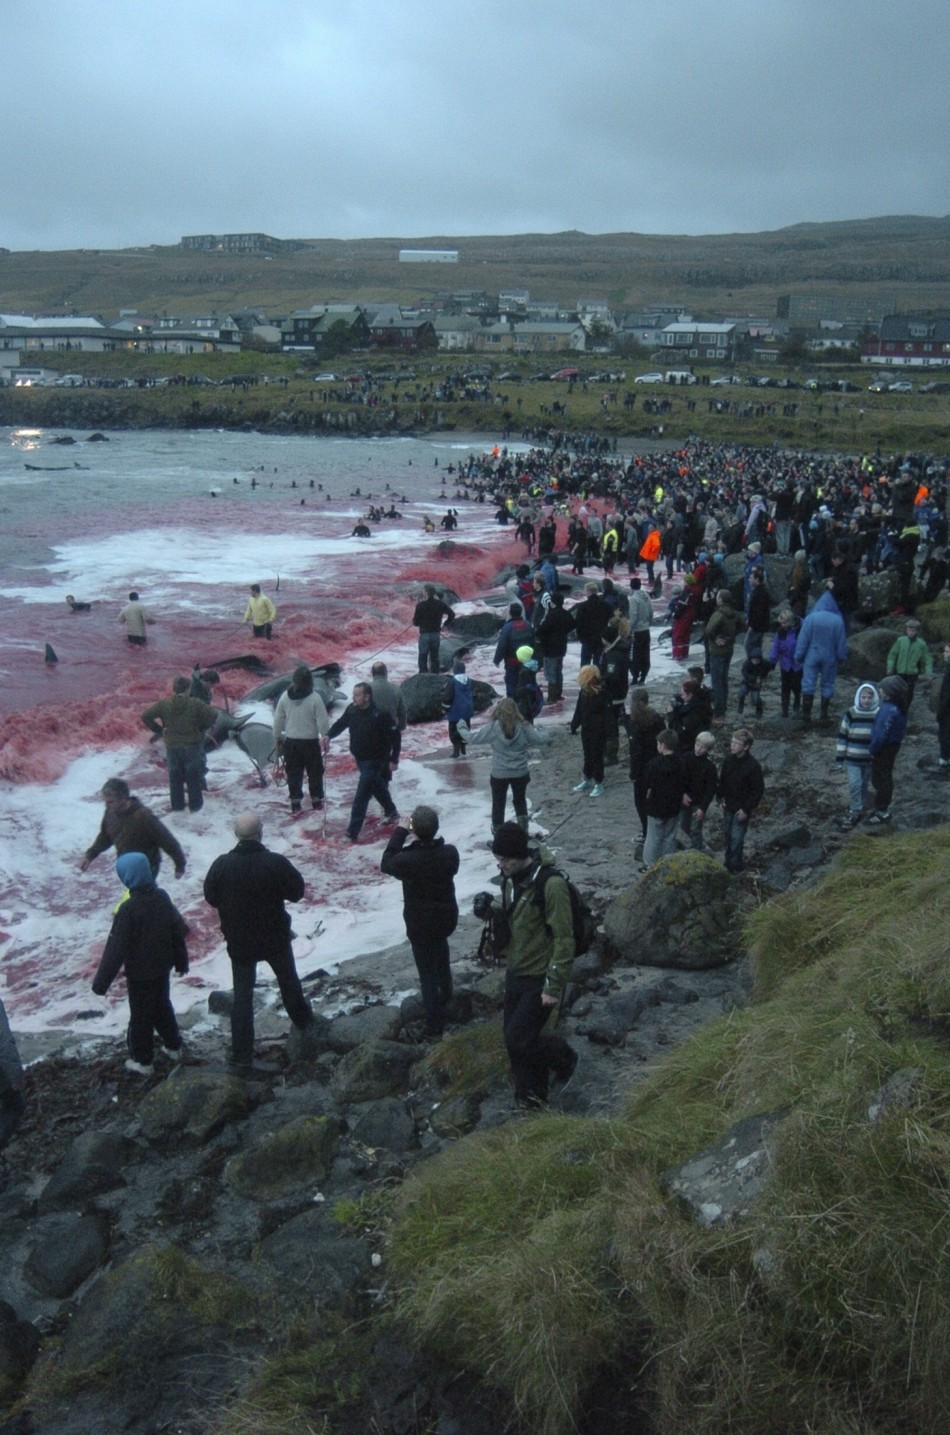 Inhabitants of the Faroe Islands have taken part in their traditional 'Grindadrap' – a gruesome hunt for pilot whales.